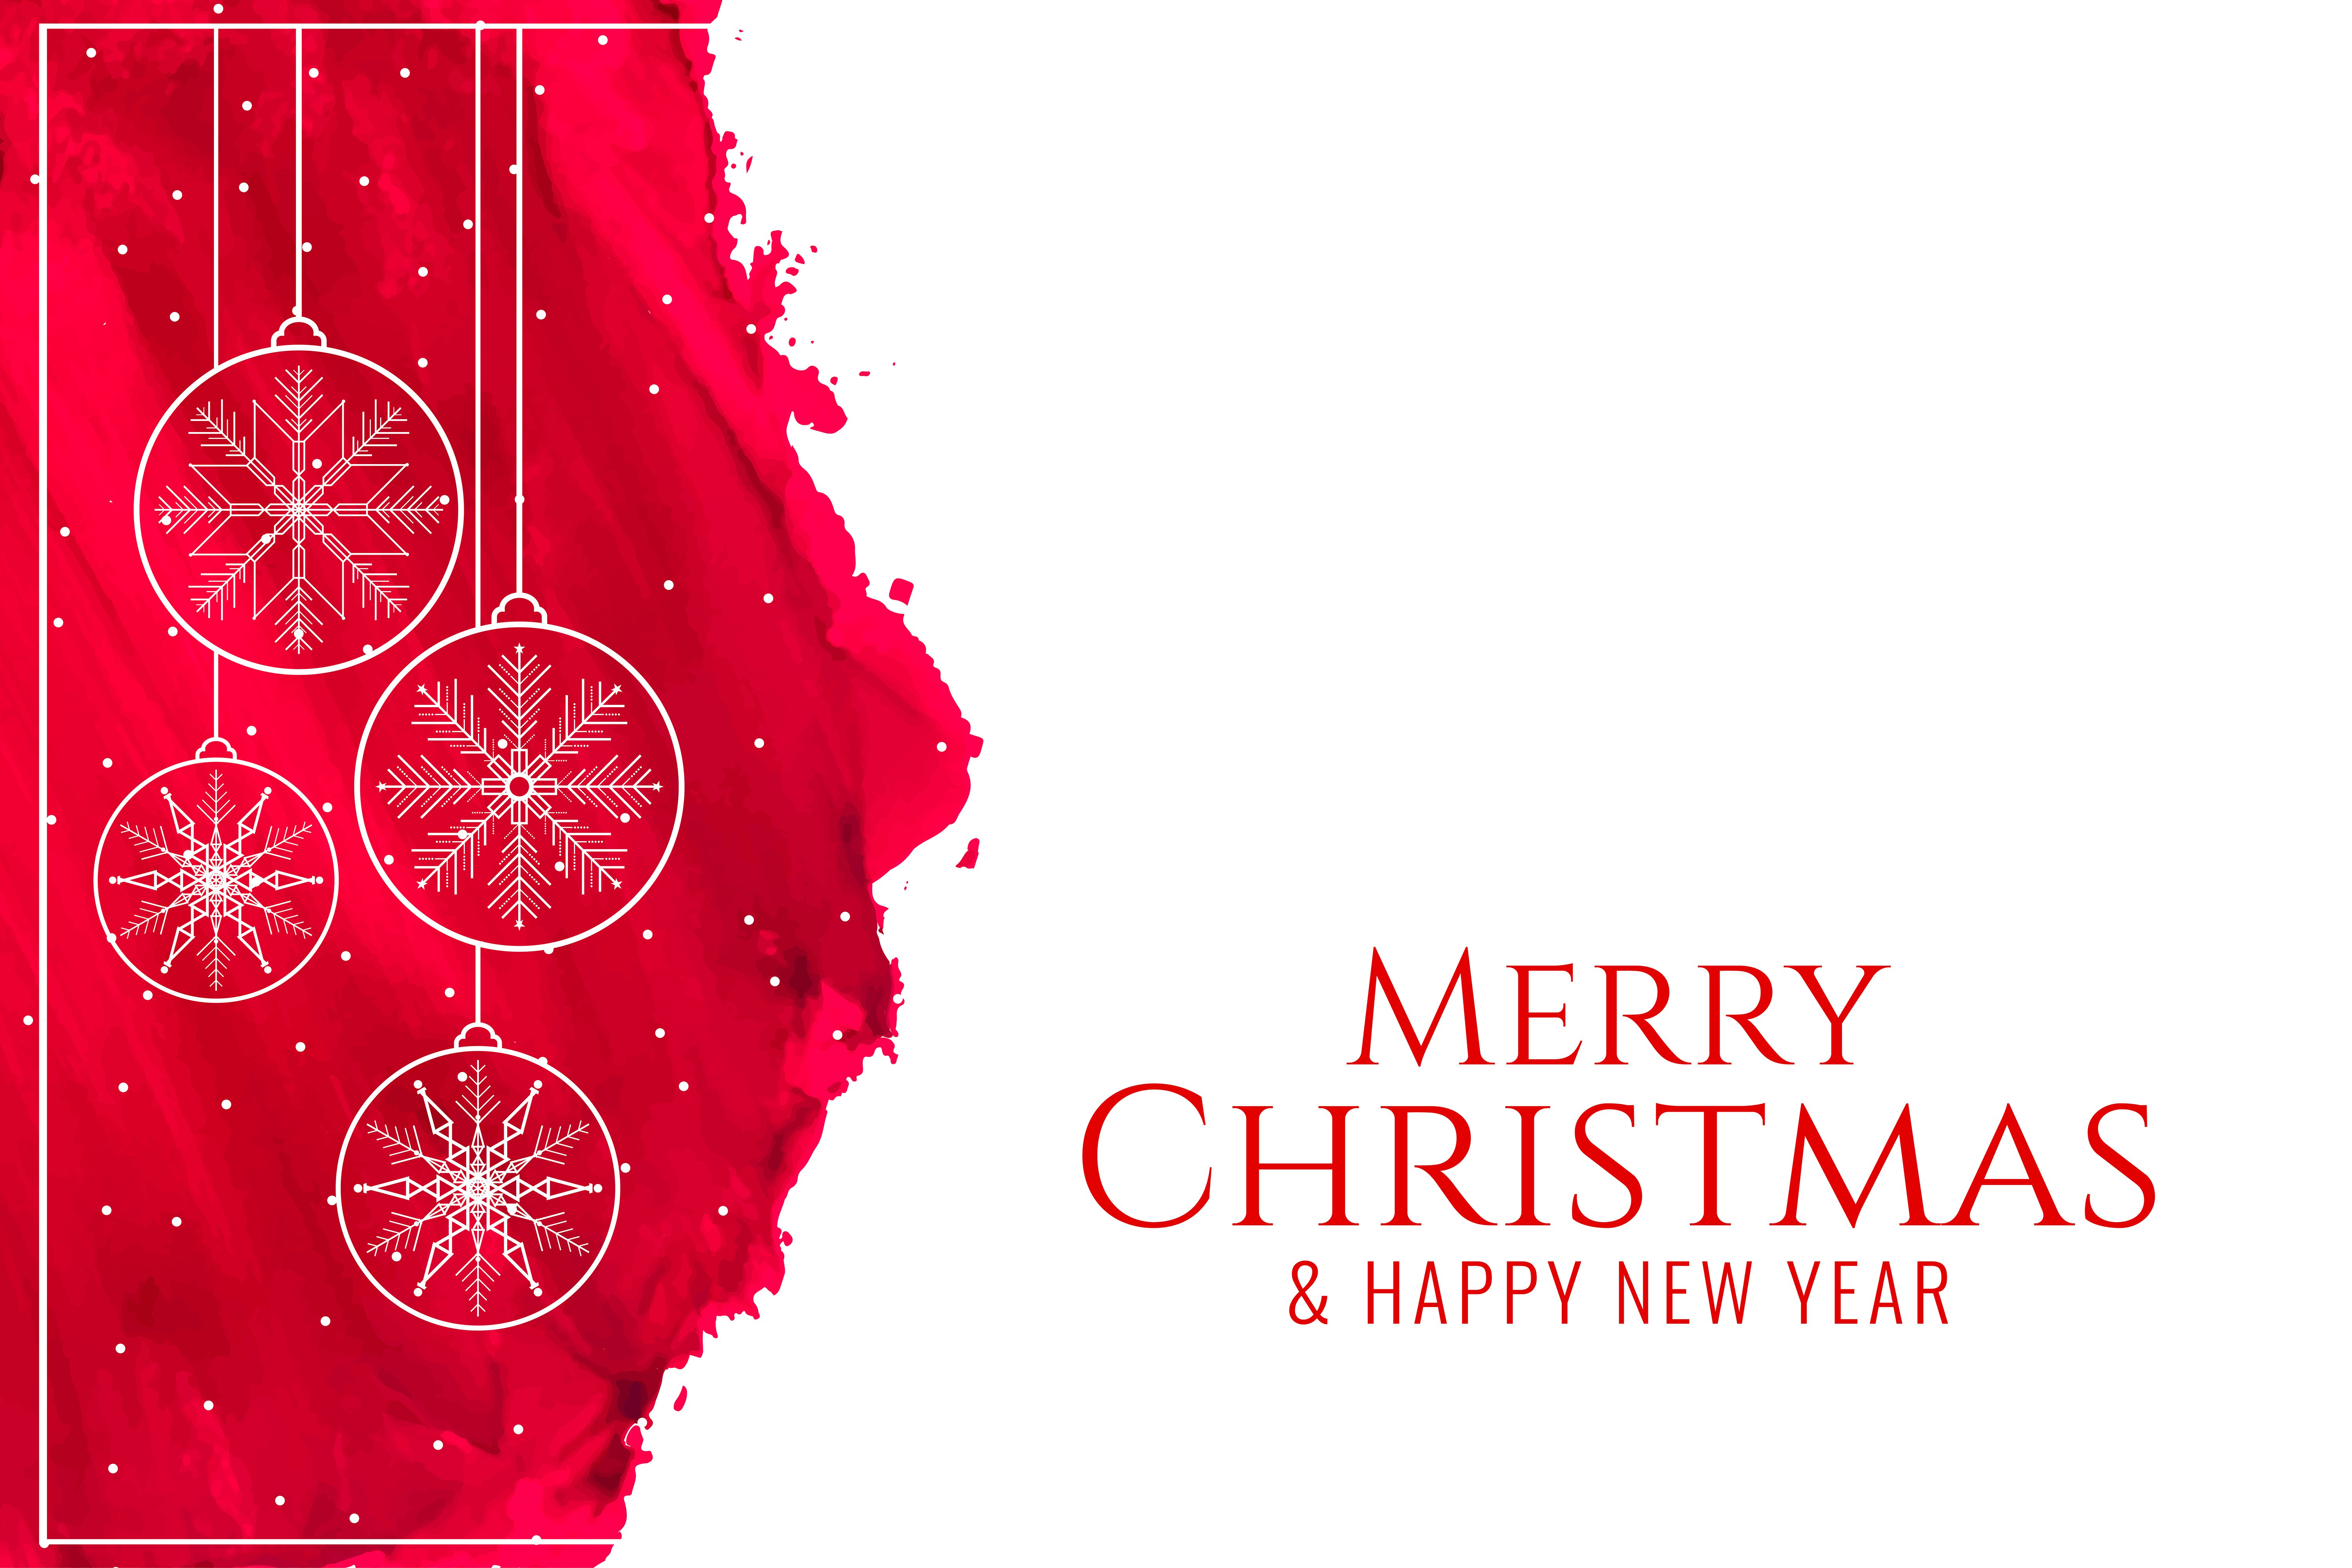 Merry Christmas and Happy New Year 2020 4K wallpaper